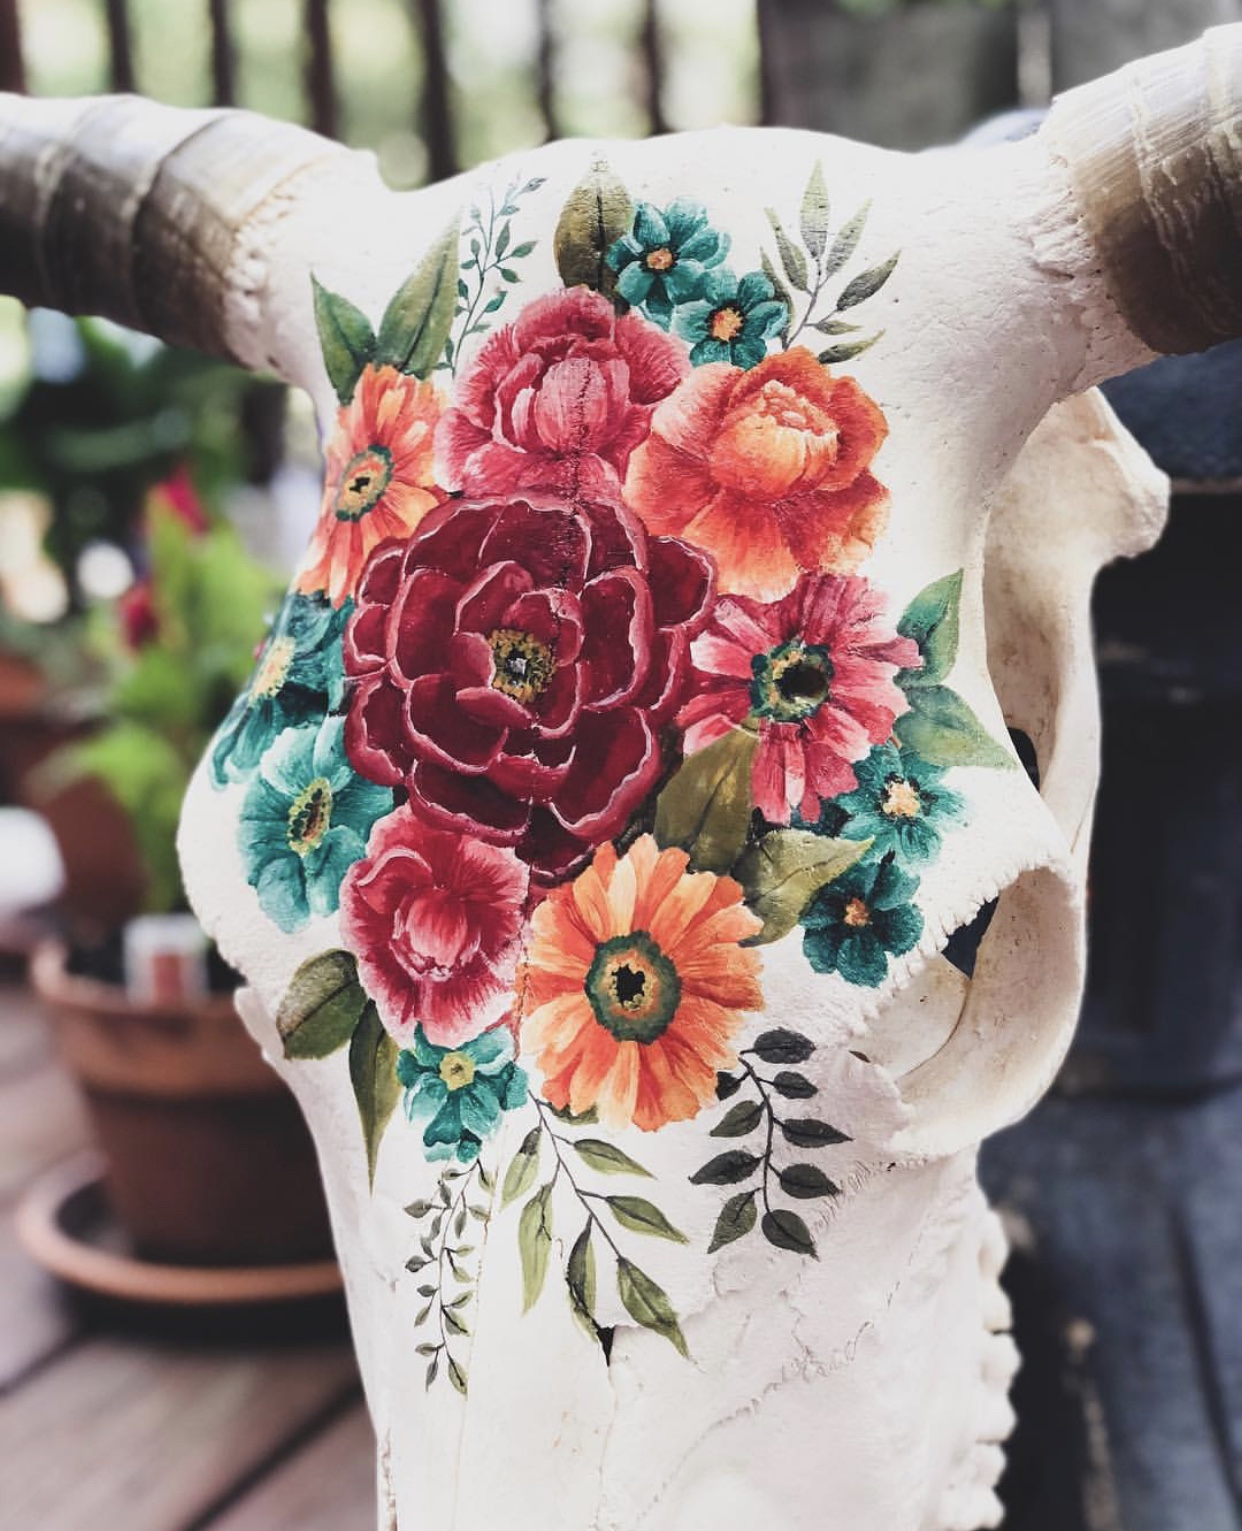 Bear Co. is a globally-inspired handmade business owned by occupational therapist and cat lover Sara Baumann. Sara puts her travel & cultural inspiration into her original products which include hand-painted cow skulls & beautiful jewelry.  @bearxco